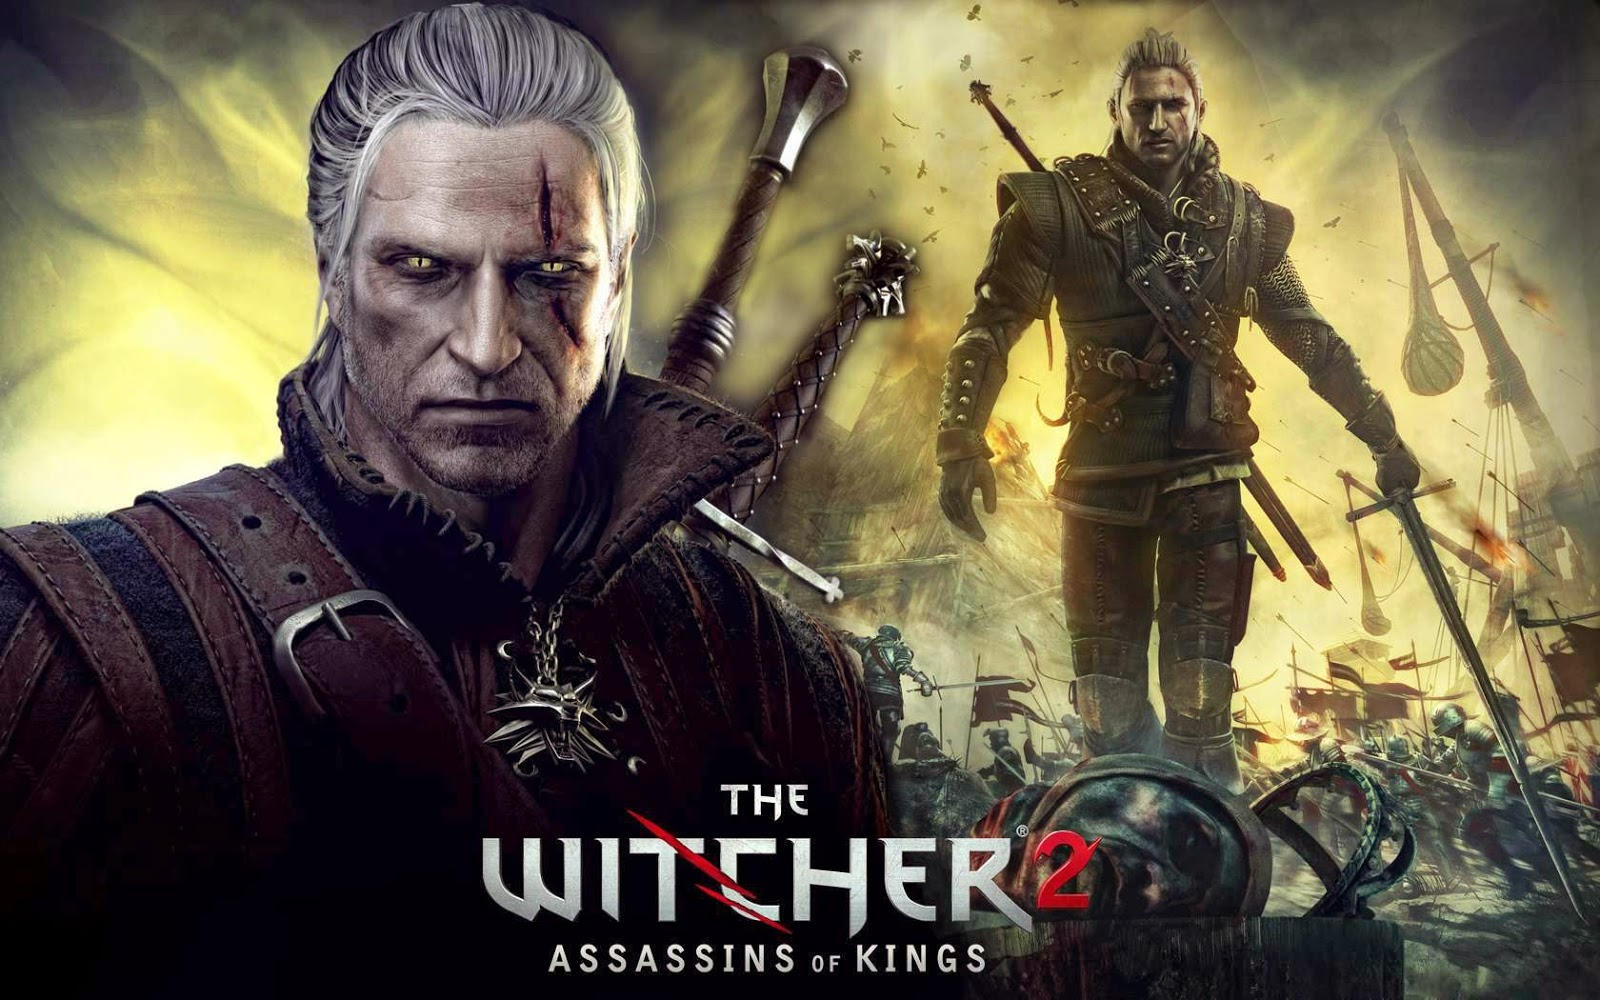 The-Witcher 2